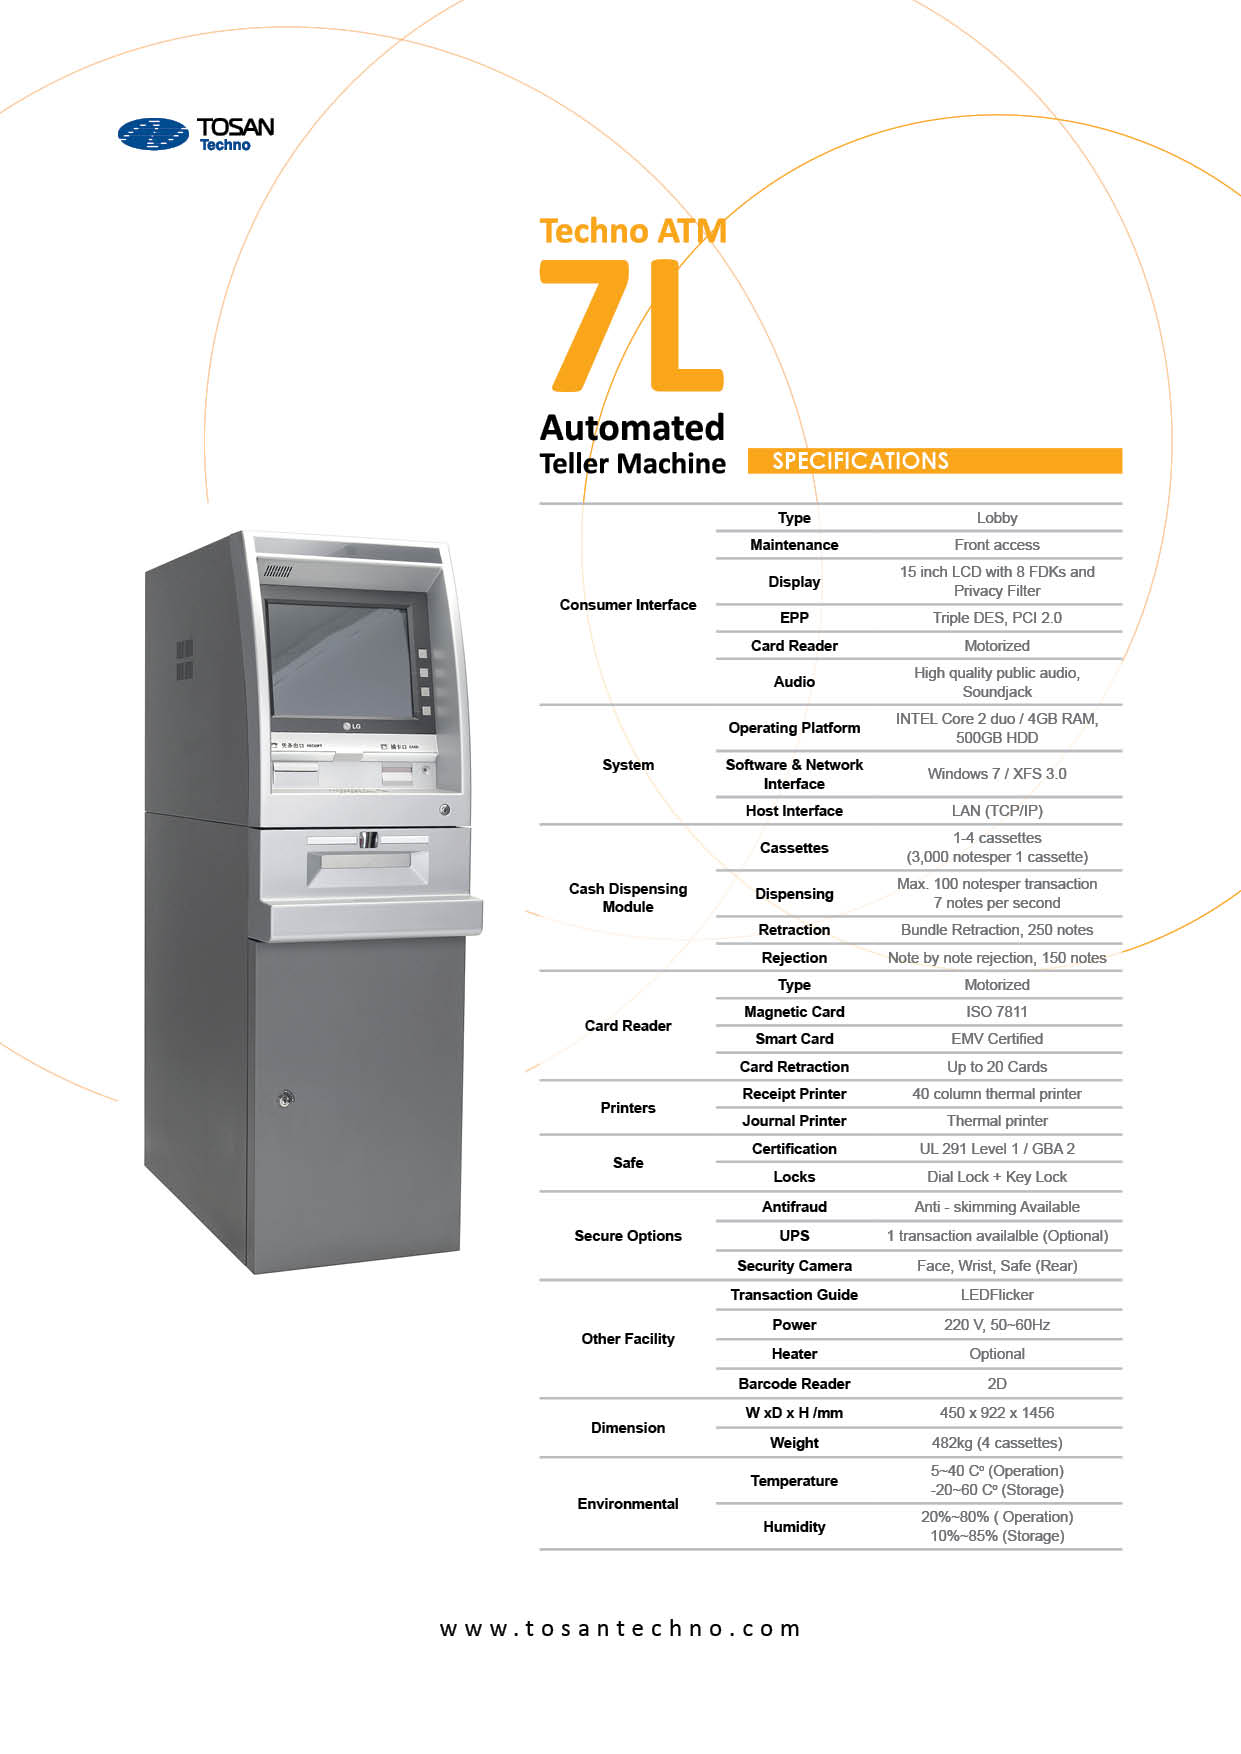 TechnoATM7L